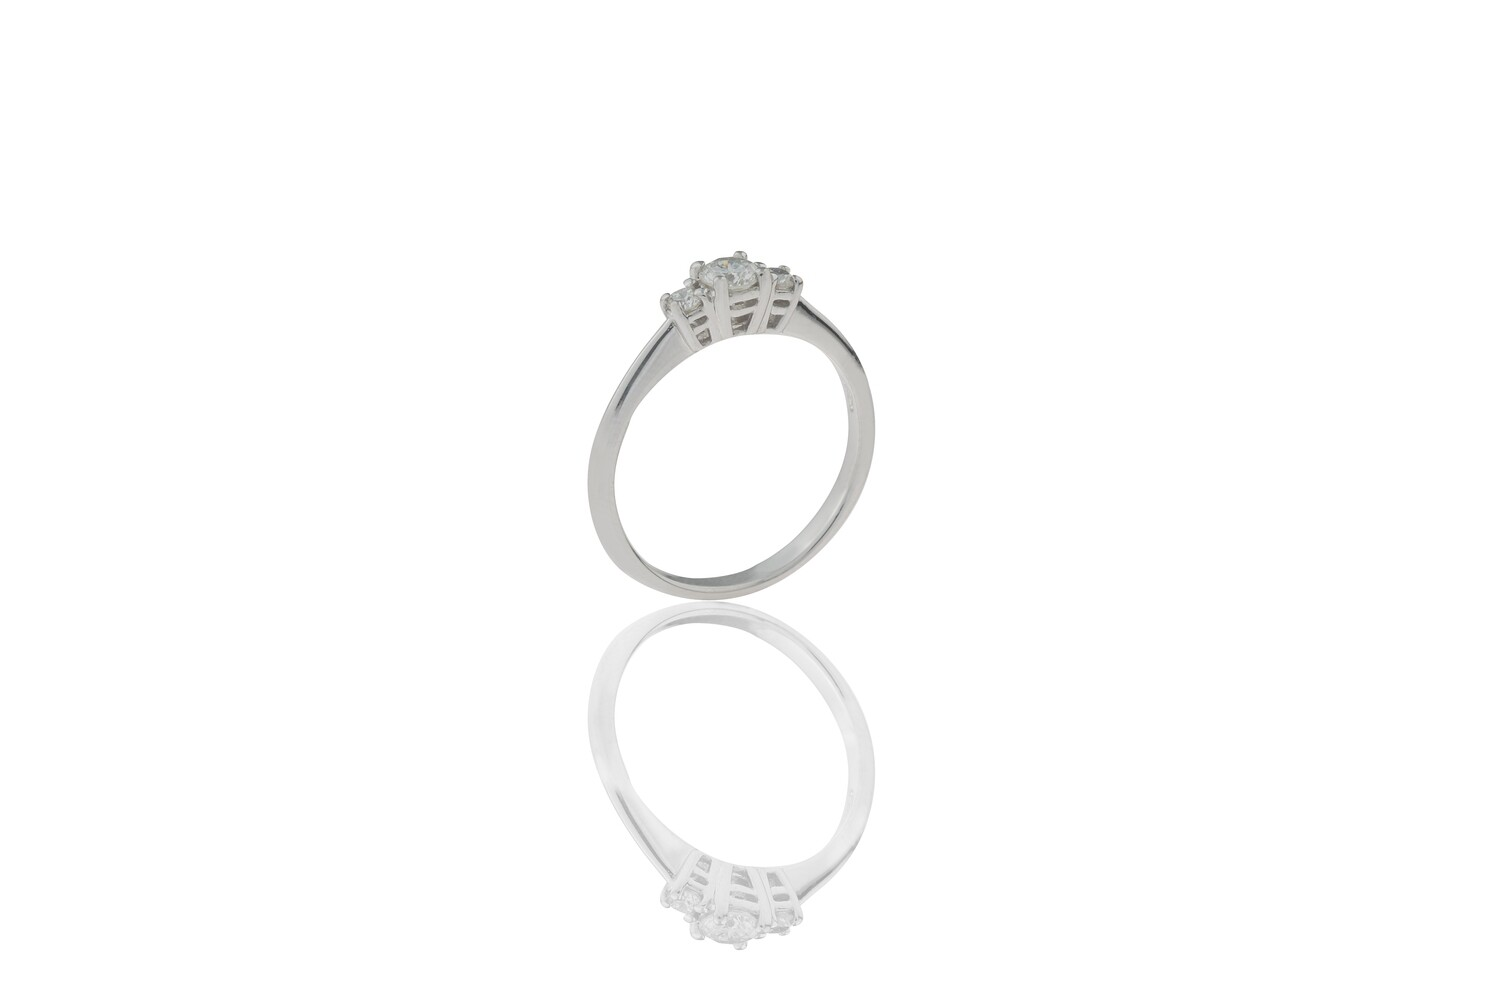 Scale Trilogy Ring